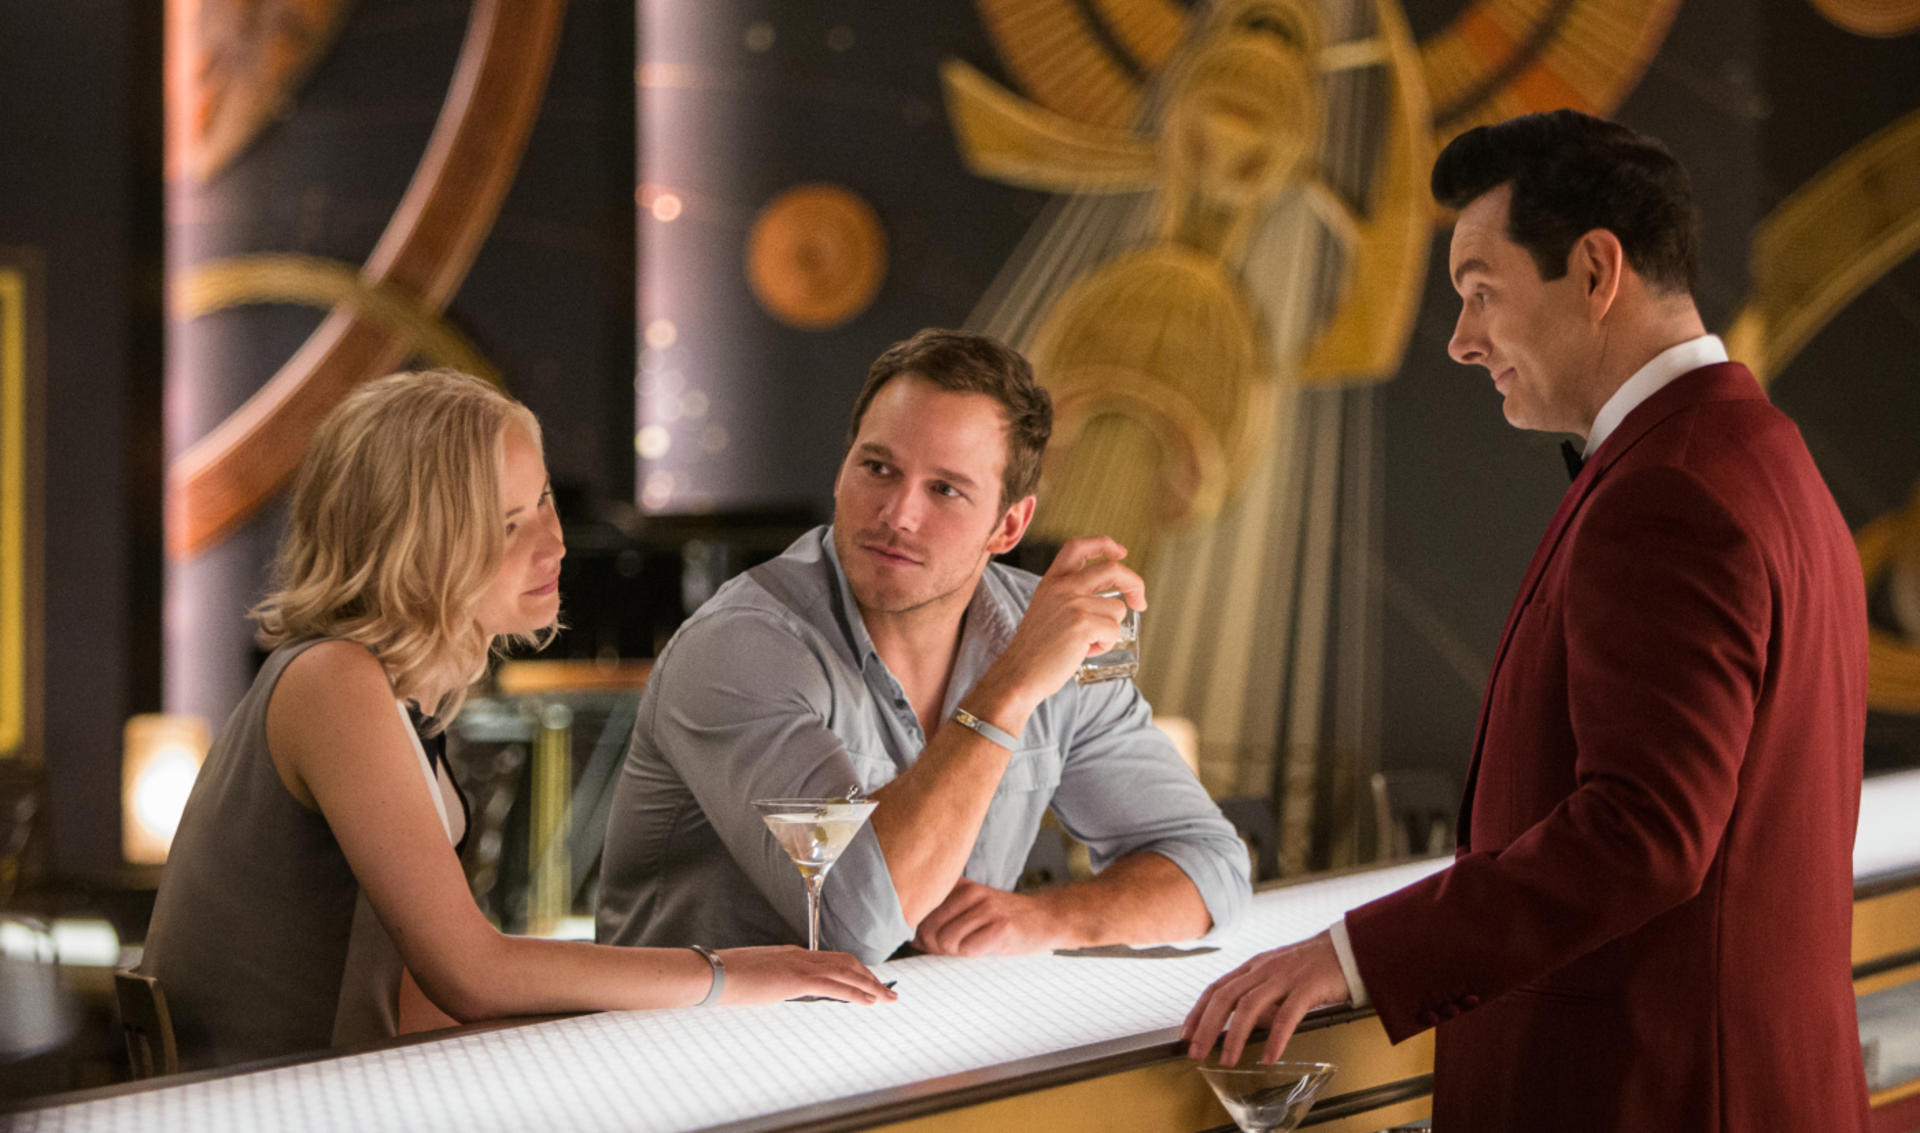 Passengers mit Jennifer Lawrence Chris Pratt und Michael Sheen